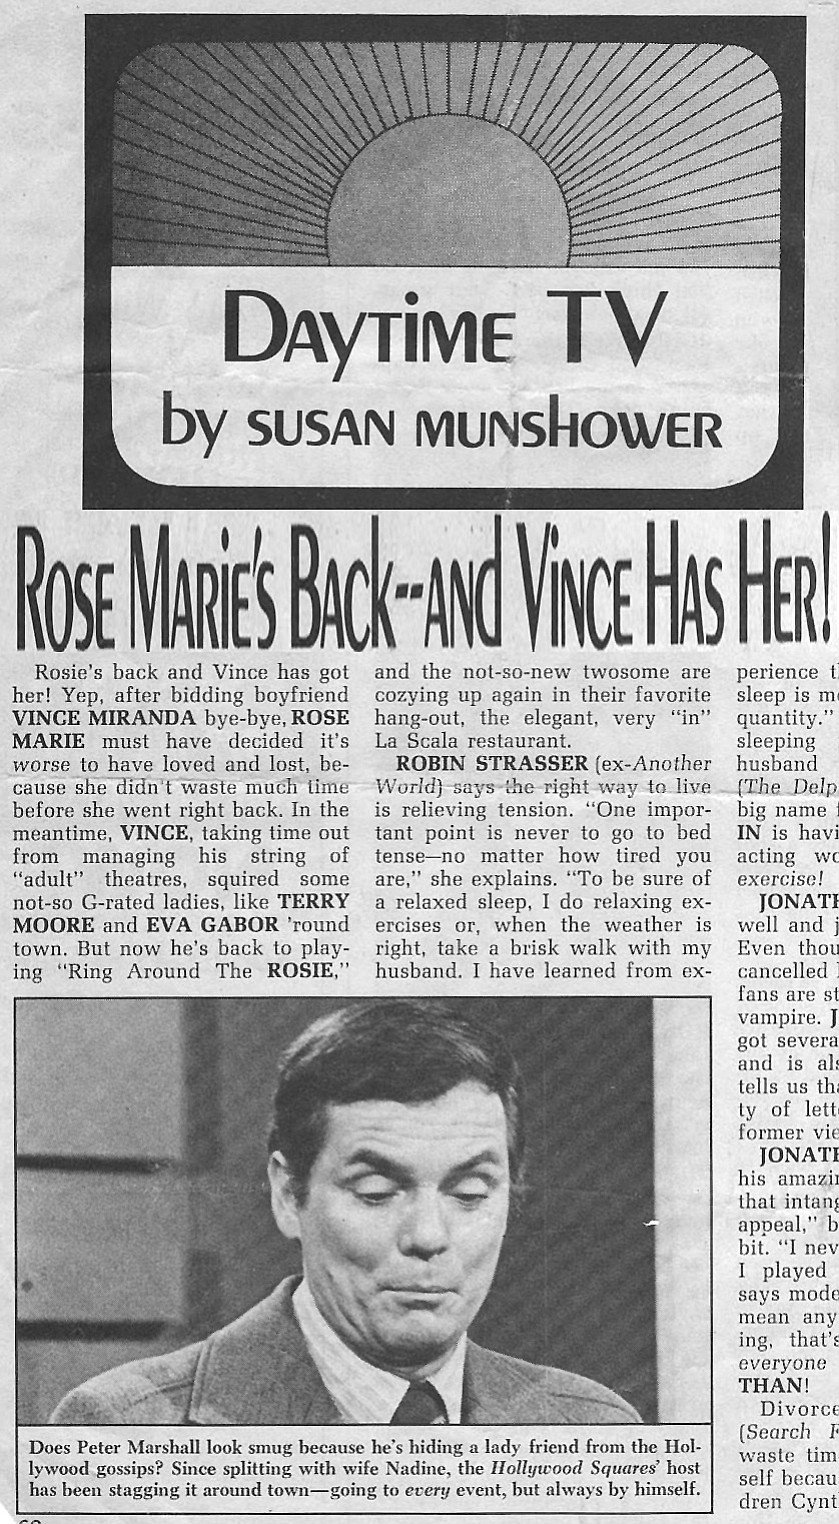 """Miranda was reportedly thrilled at this mention in a 1972 issue of L.A.'s Daytime TV magazine: """"Rosie's back and Vince has got her! """""""